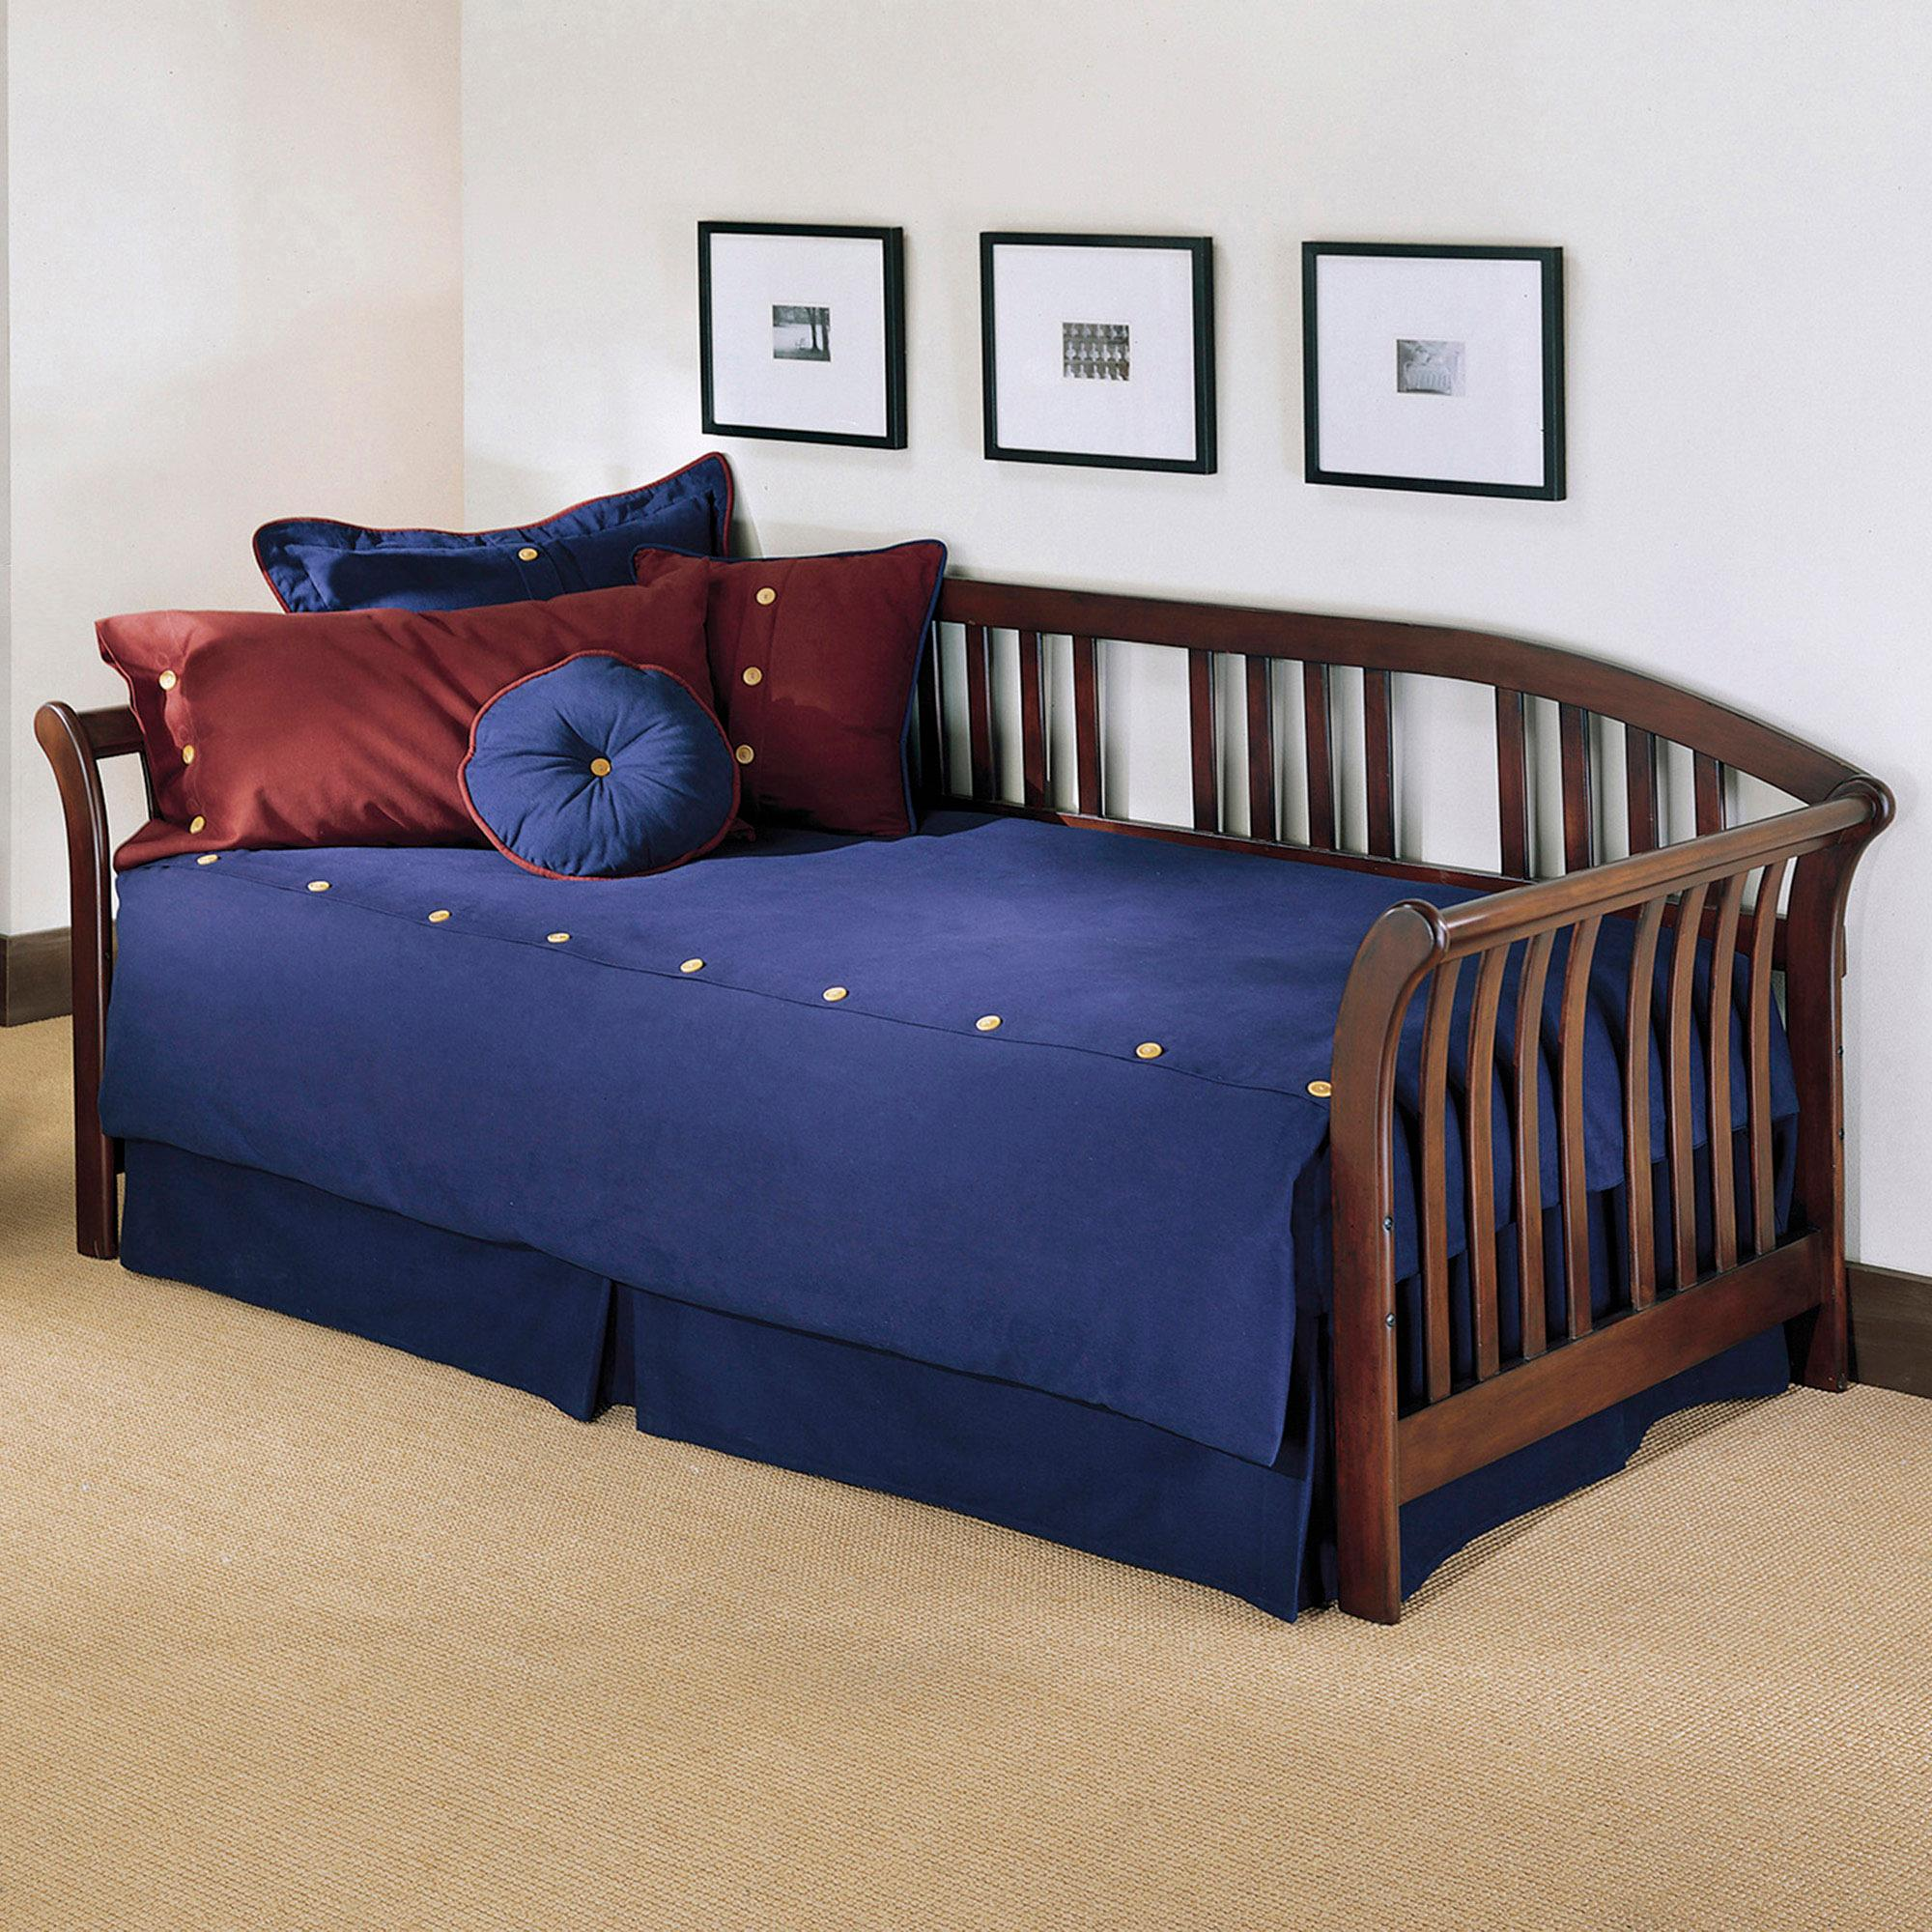 Amazon Com Salem Complete Wood Daybed With Euro Top Deck